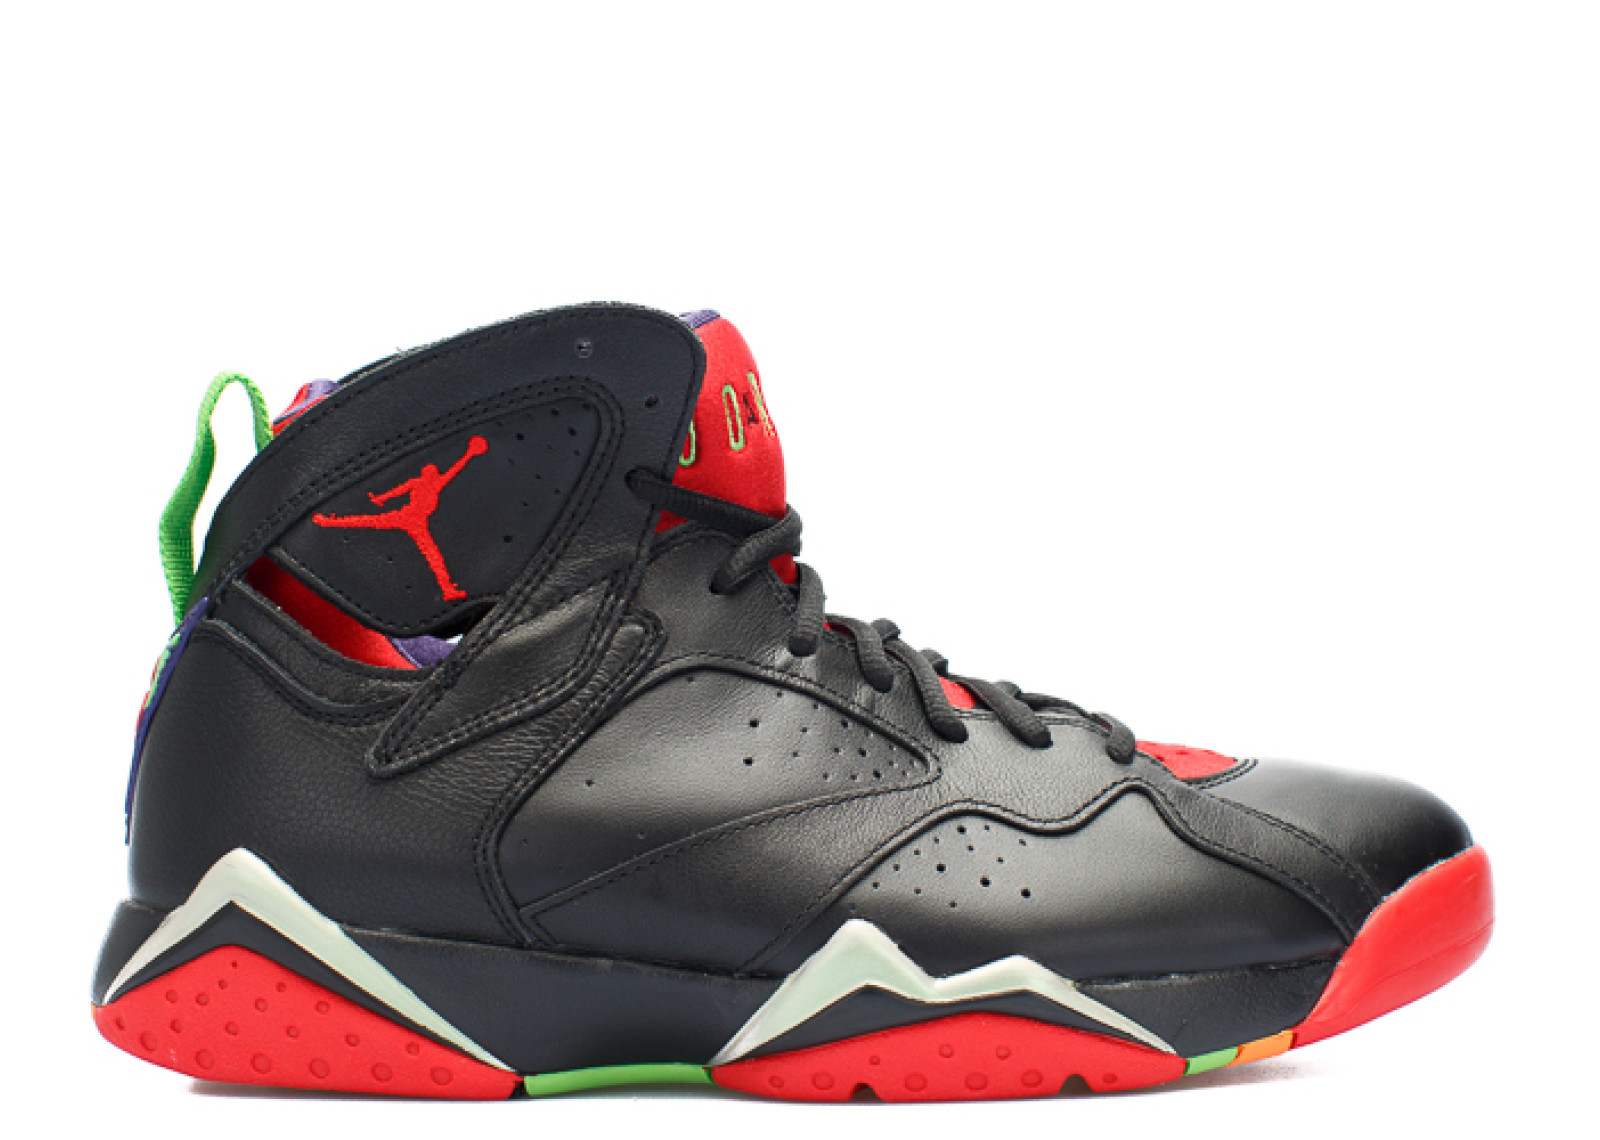 AIR JORDAN 7 RETRO 'MARVIN THE MARTIAN' - 304775-029